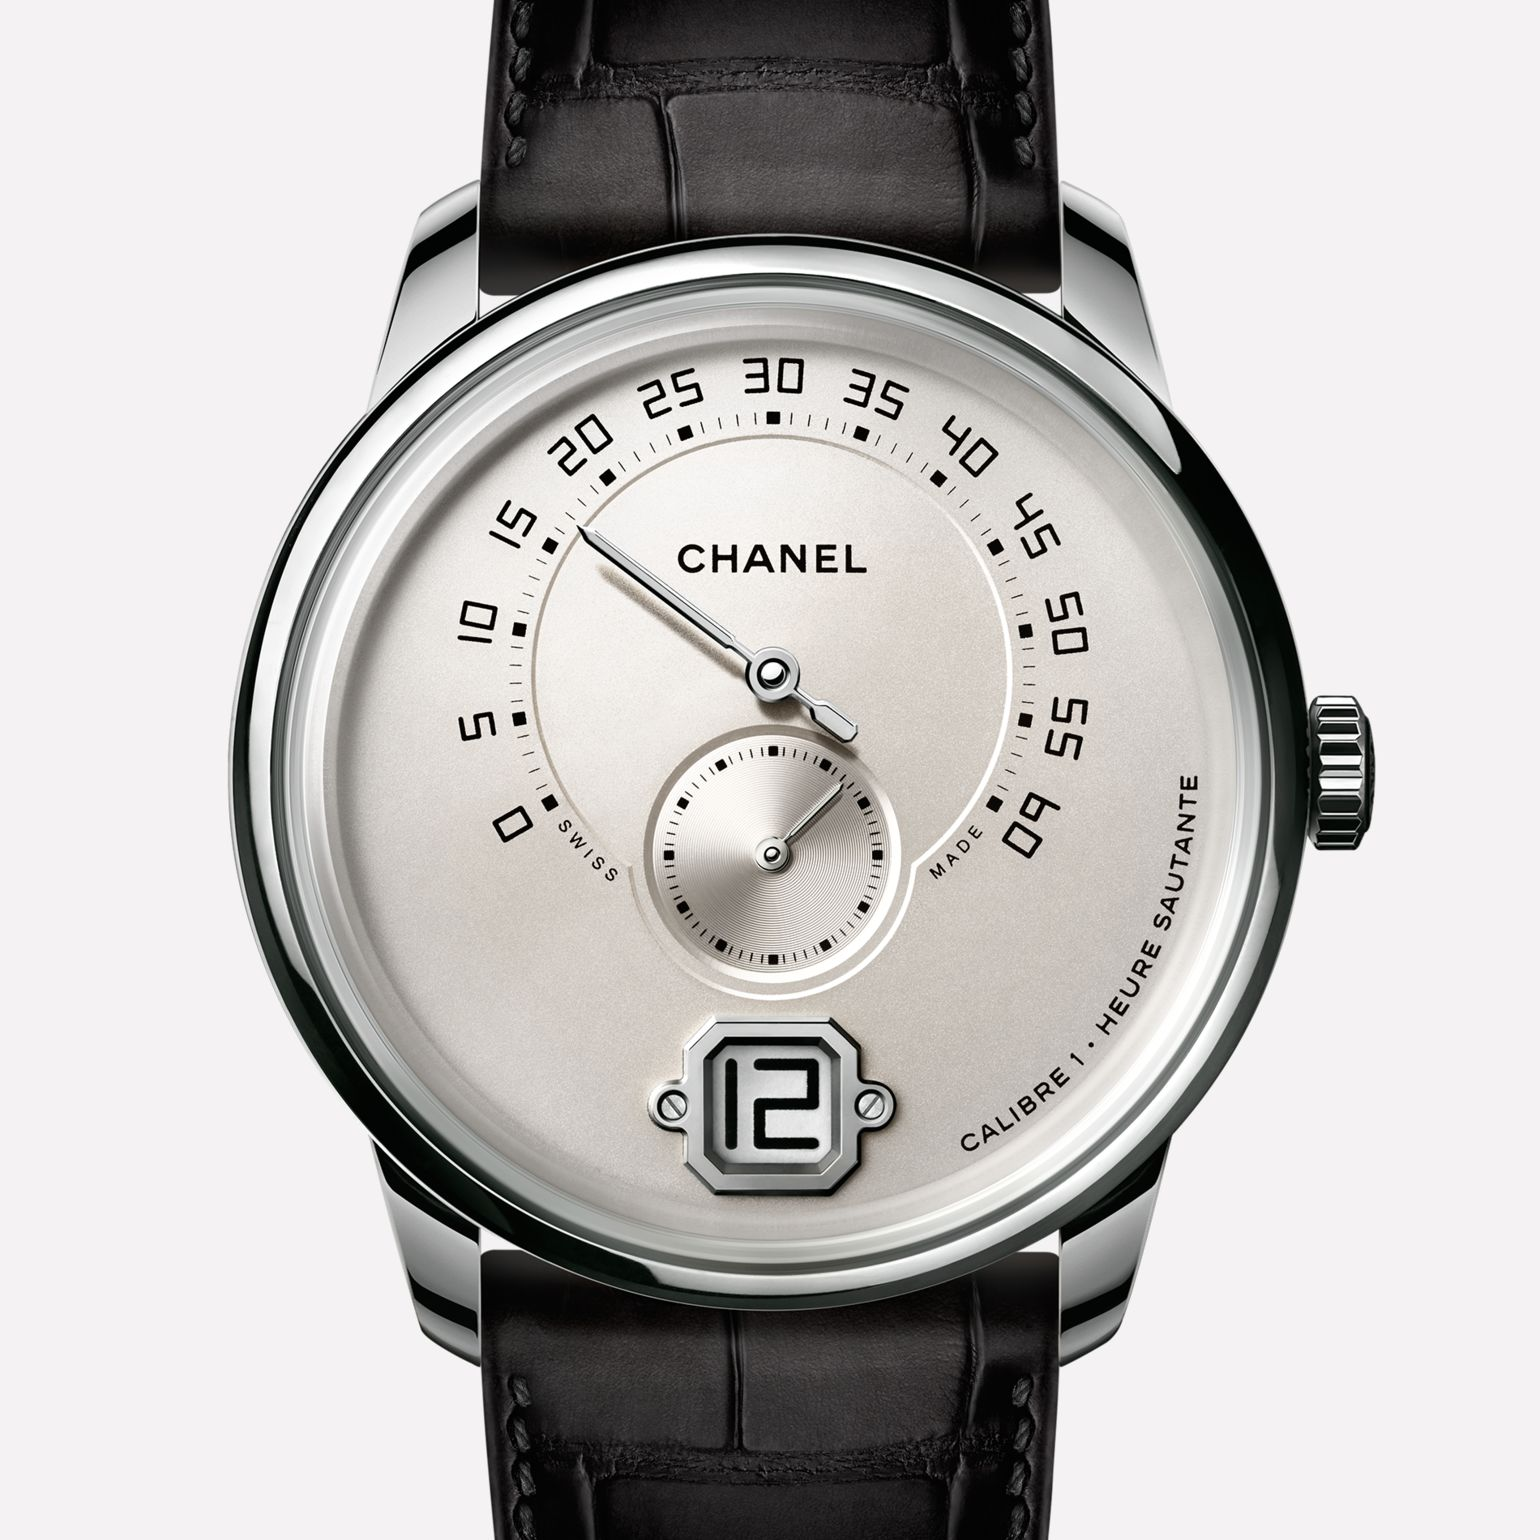 Monsieur Watch White gold, ivory dial with jumping hour, retrograde minute indication at 240° and small second counter